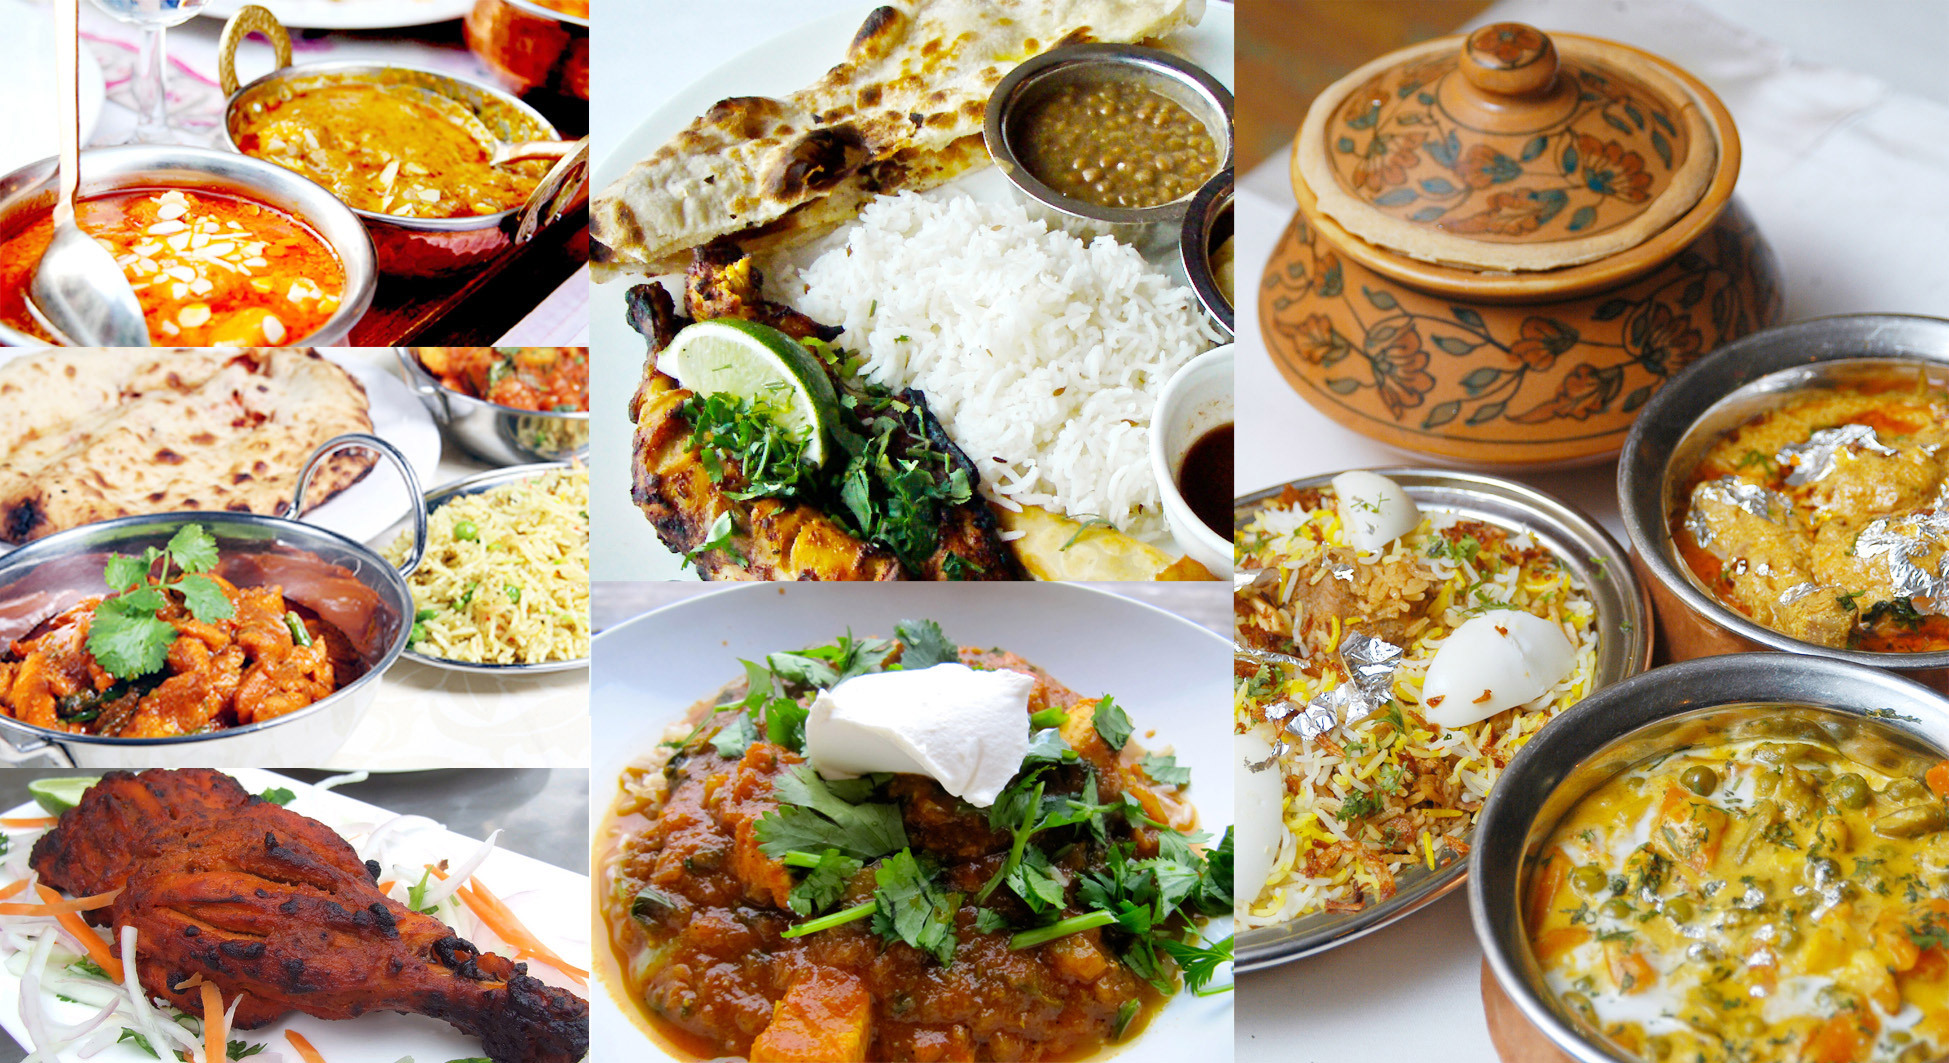 Catering Services Singapore Indian Food